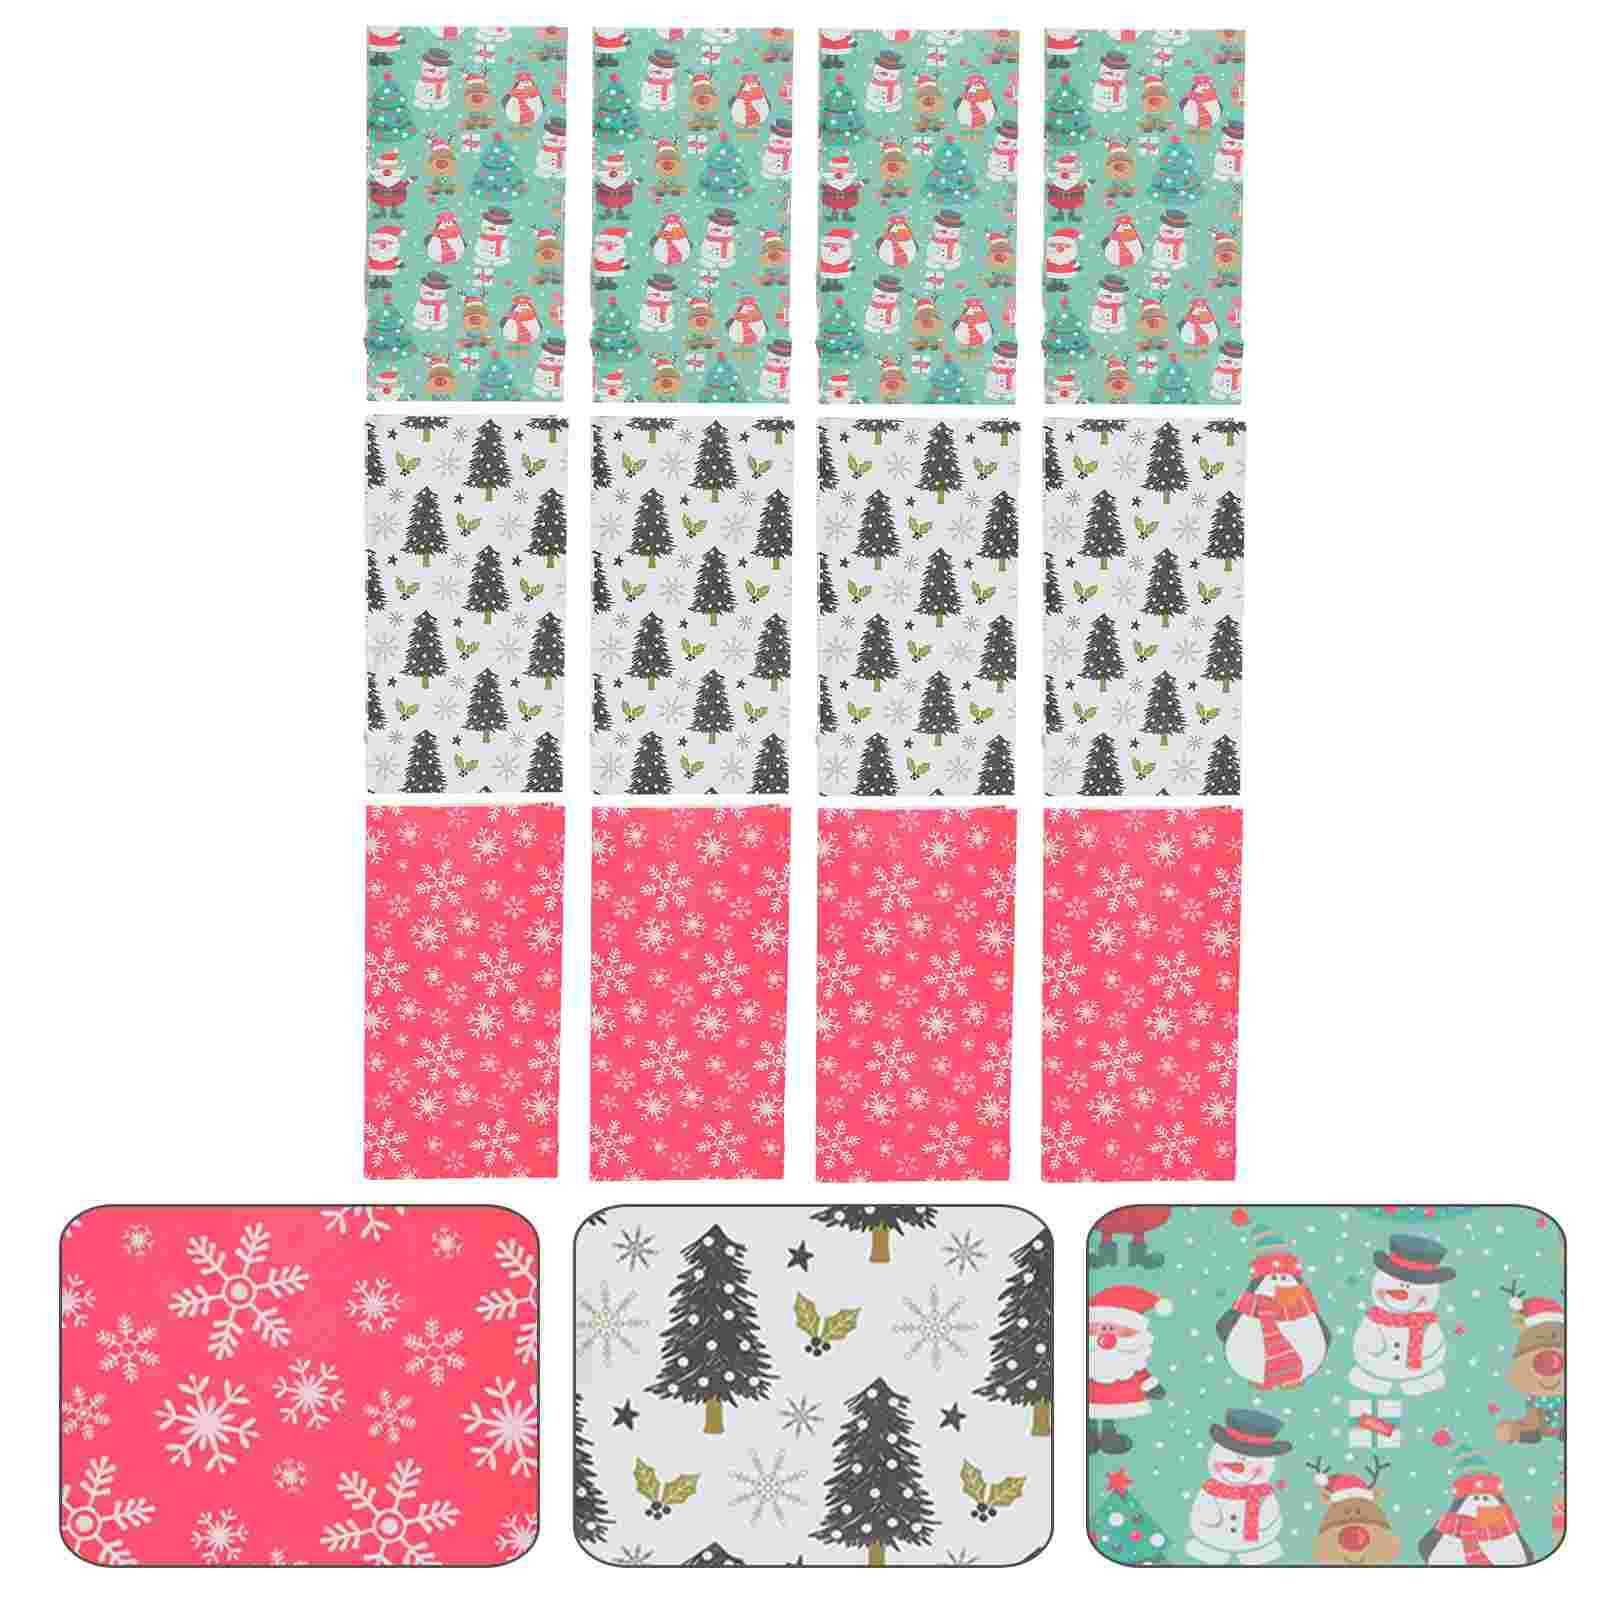 12Pcs Christmas Treat Bags Paper Bags Holiday Cookie Bags Party Supplies